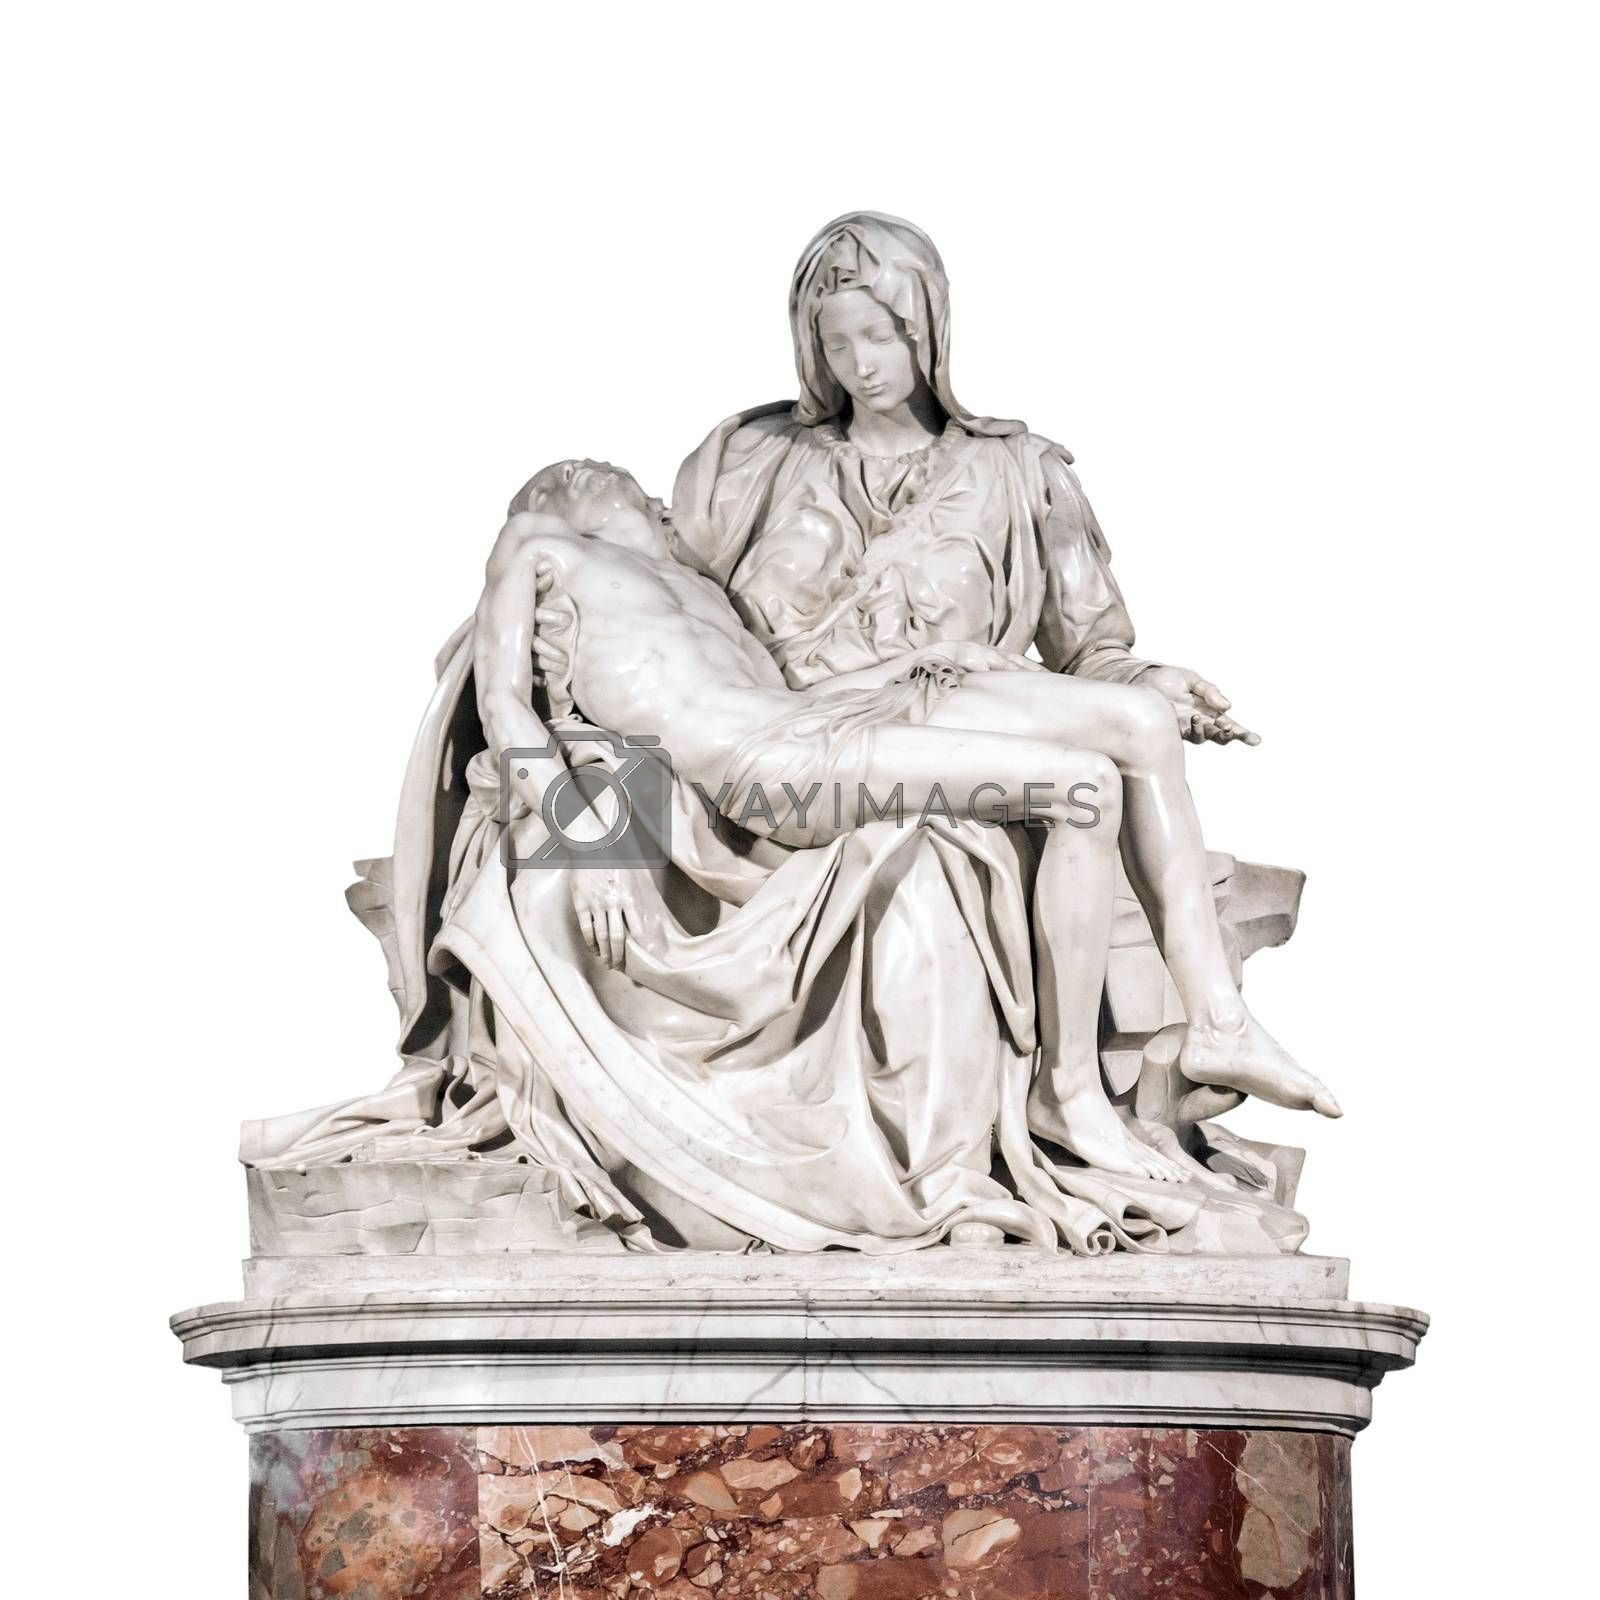 The Pieta, a work of Renaissance sculpture by Michelangelo Buonarroti isolated on white background. Famous work of art depicts the body of Jesus on the lap of his mother Mary after the Crucifixion